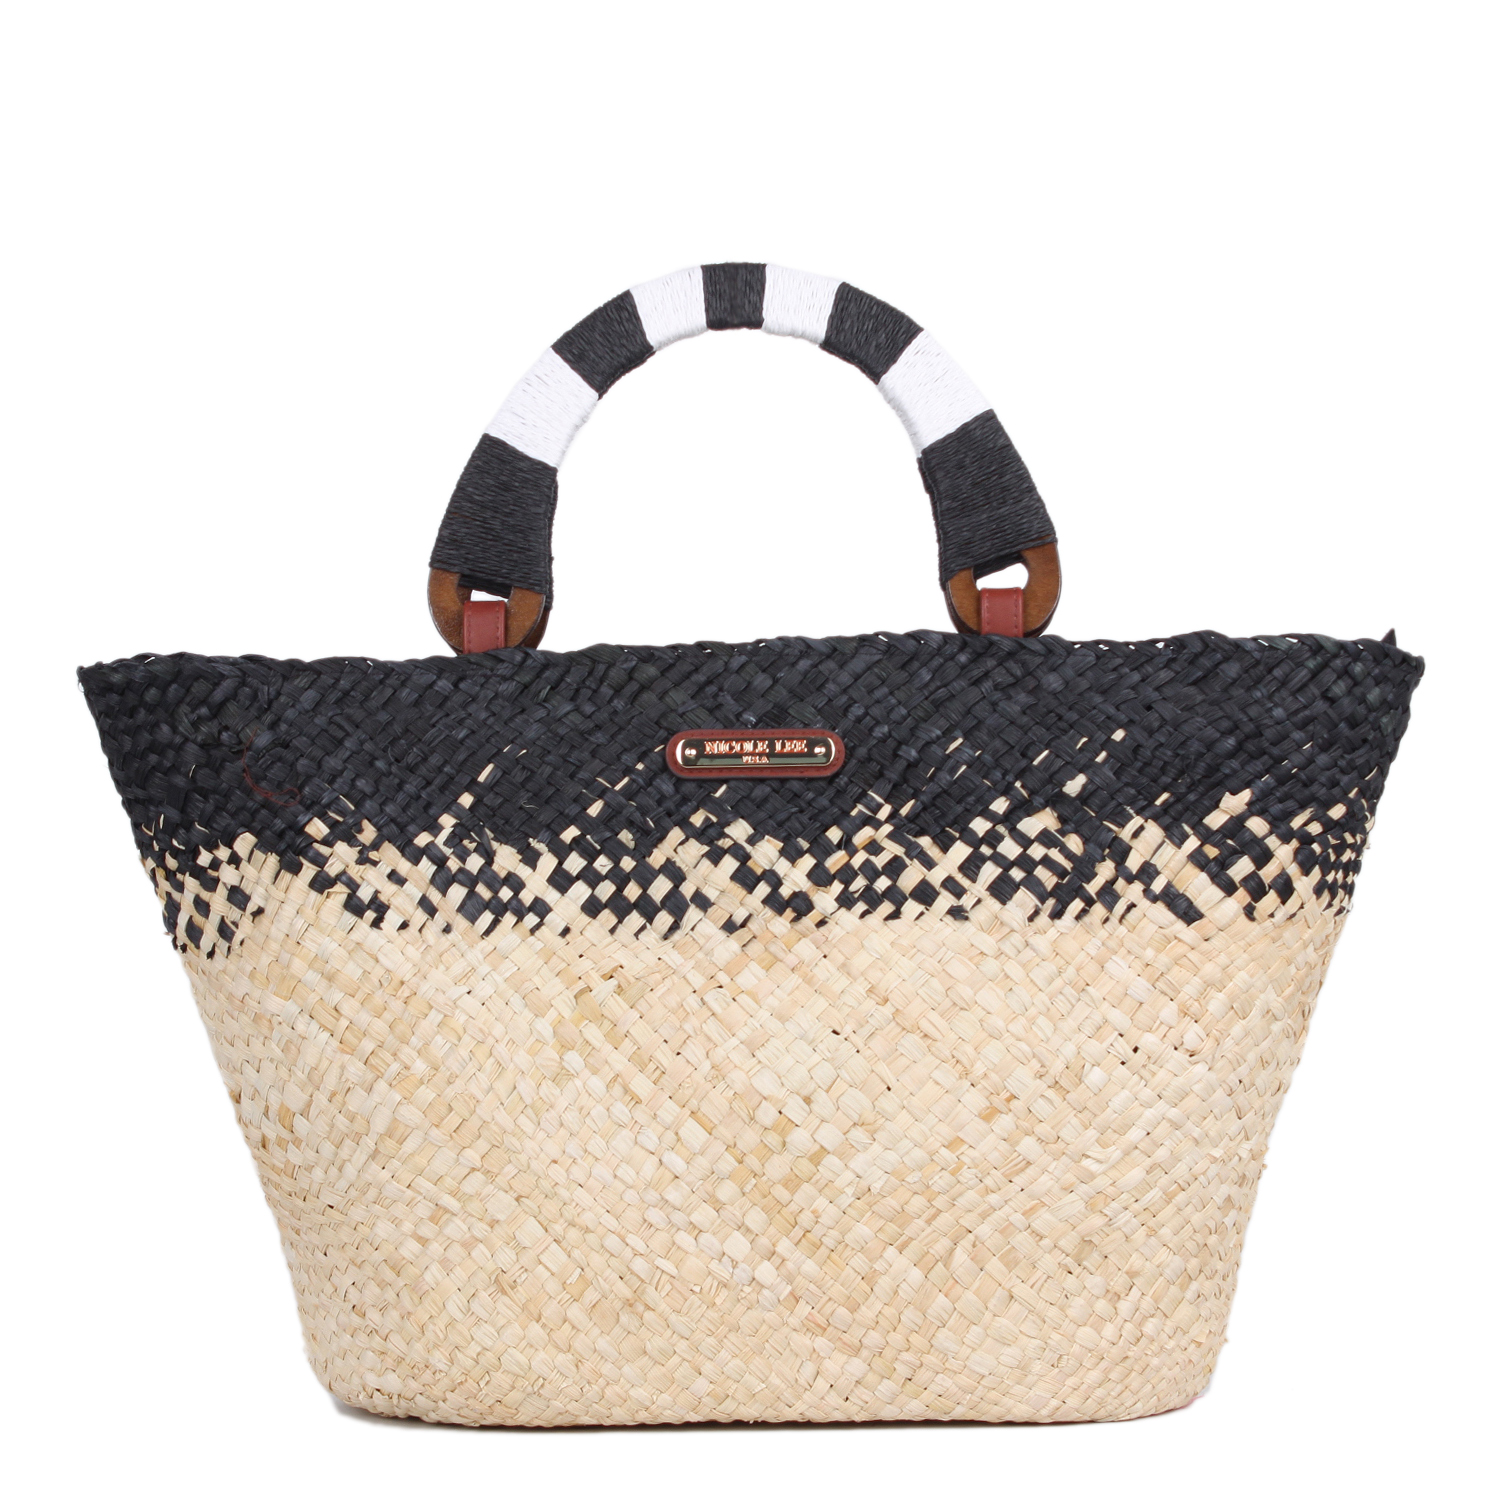 Nicole Lee Straw Wooden Top Handle Tote Black